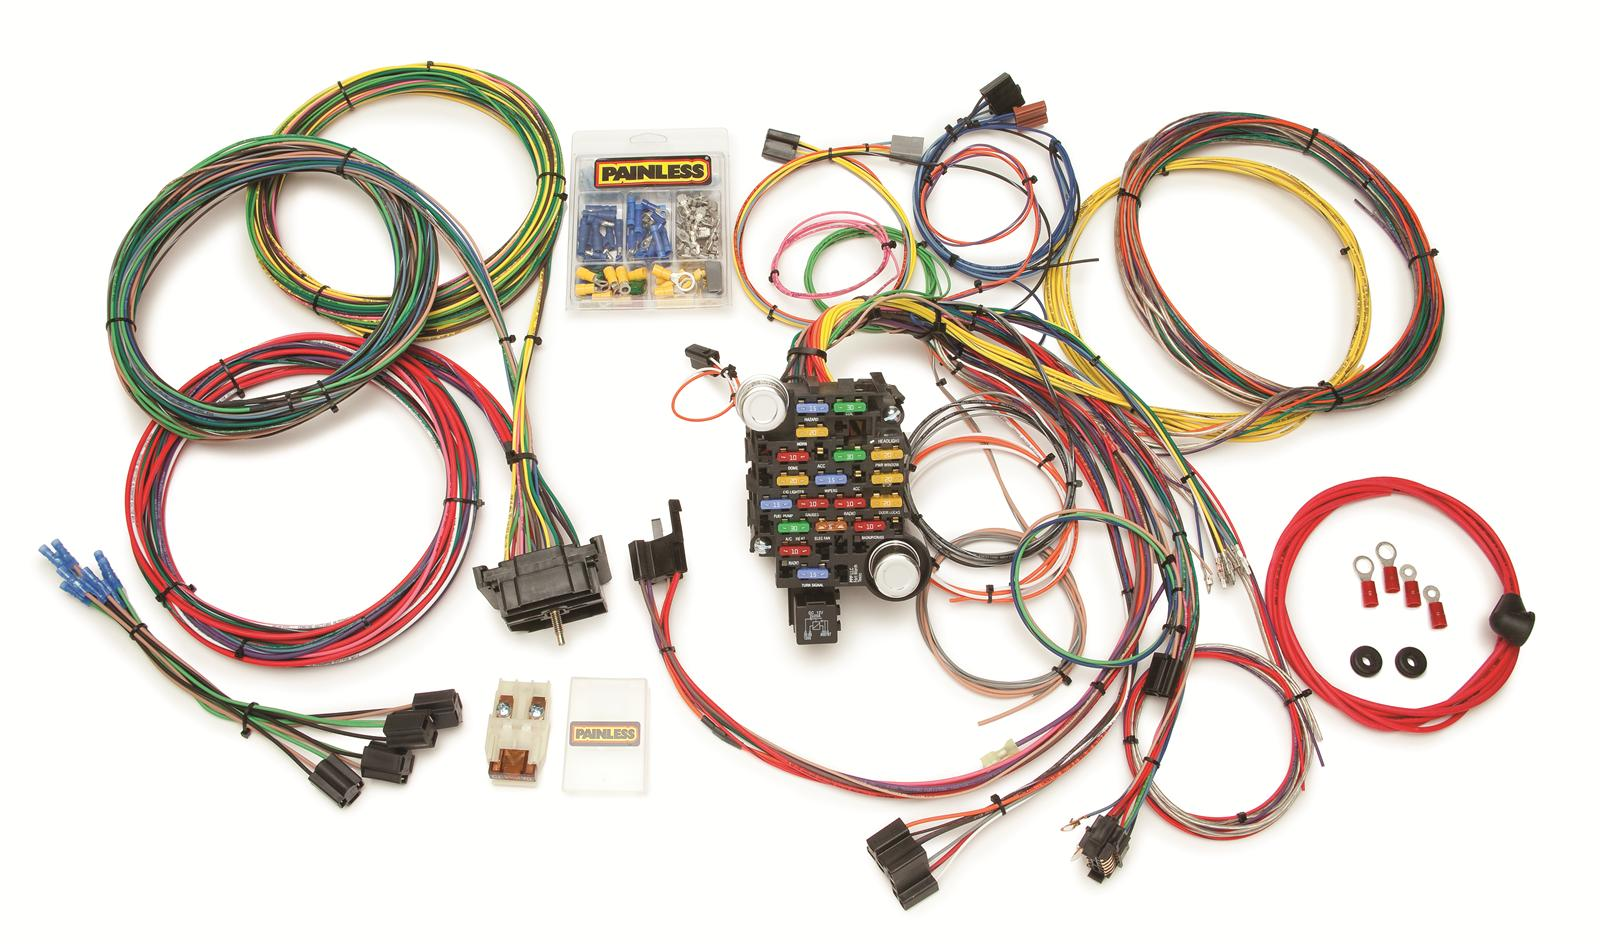 1970 Gmc Wiring Harness Diagram Will Be A Thing 1997 Topkick Painless Performance Chevy Truck Harnesses 10206 Free Shipping Rh Summitracing Com Jimmy